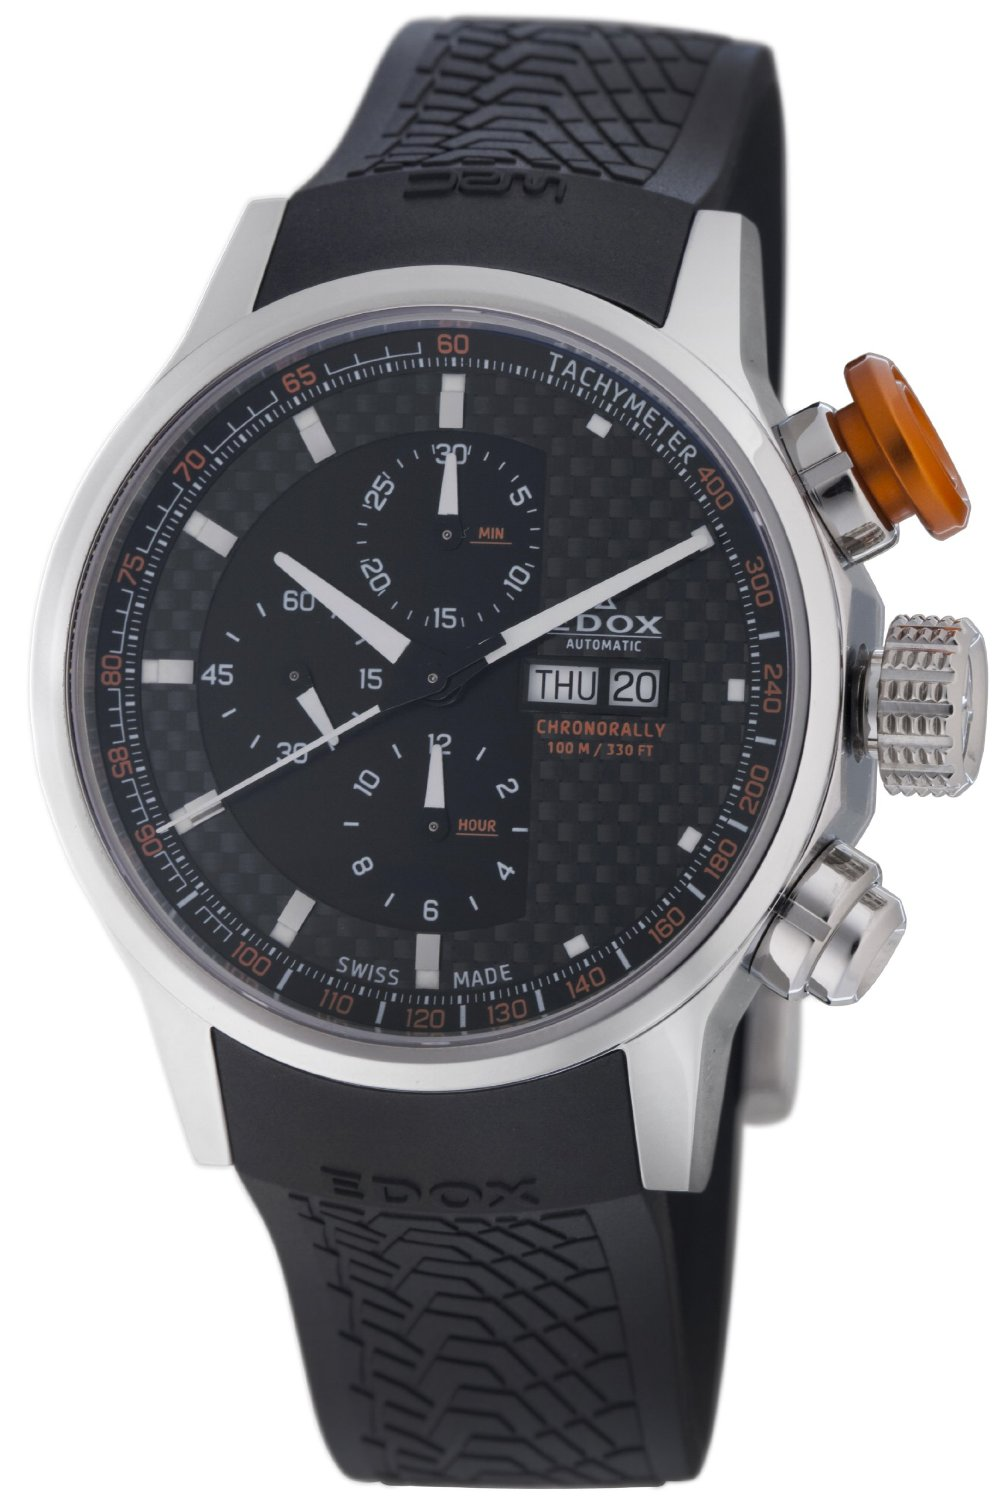 Edox Mens 01110 3 NIN WRC Automatic Chronorally Watch - Front View